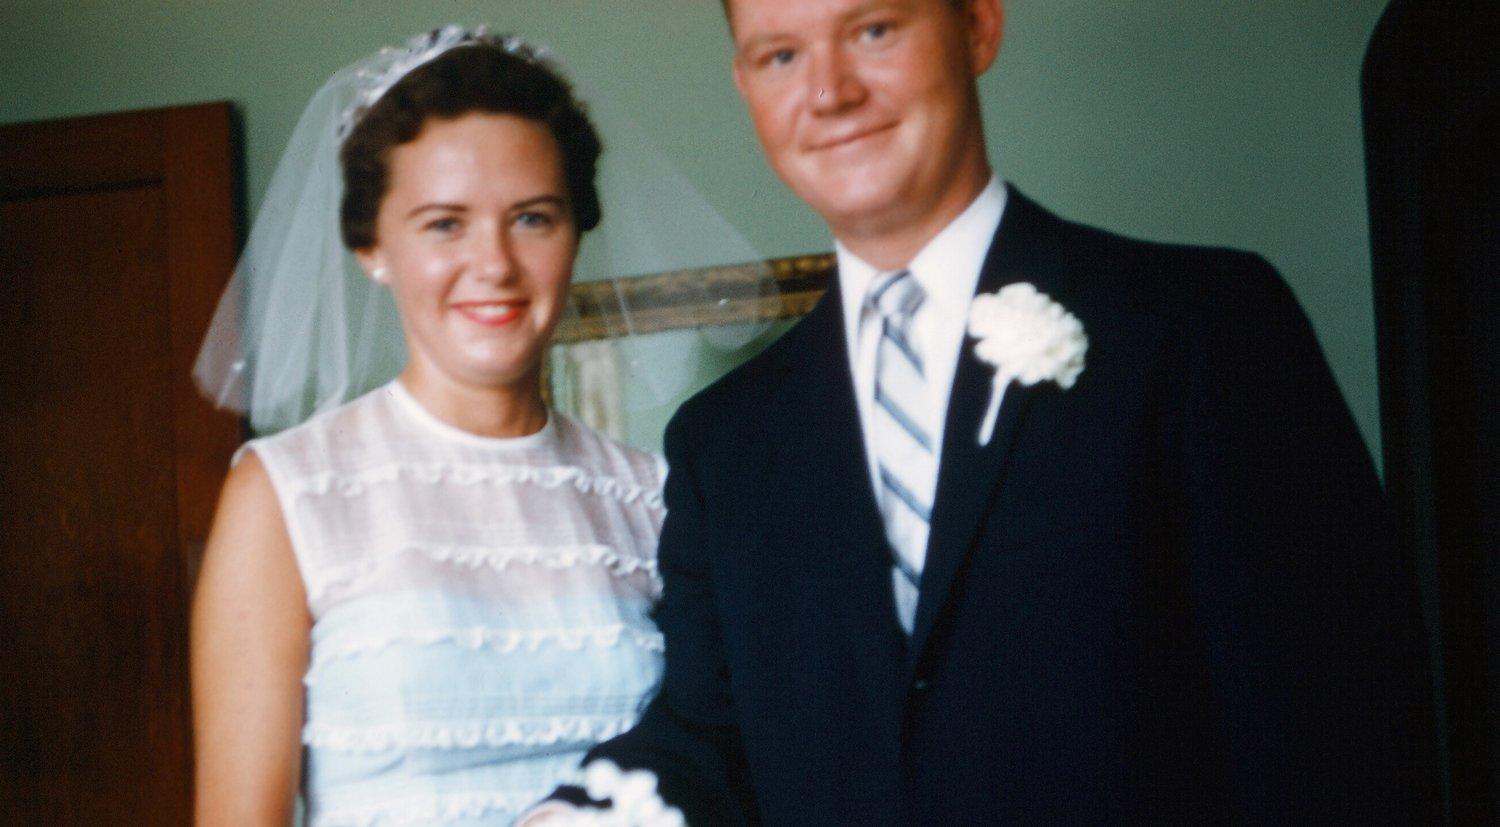 David Olsen and Bettie Jean Tucker were married for nearly 64 years before he died.